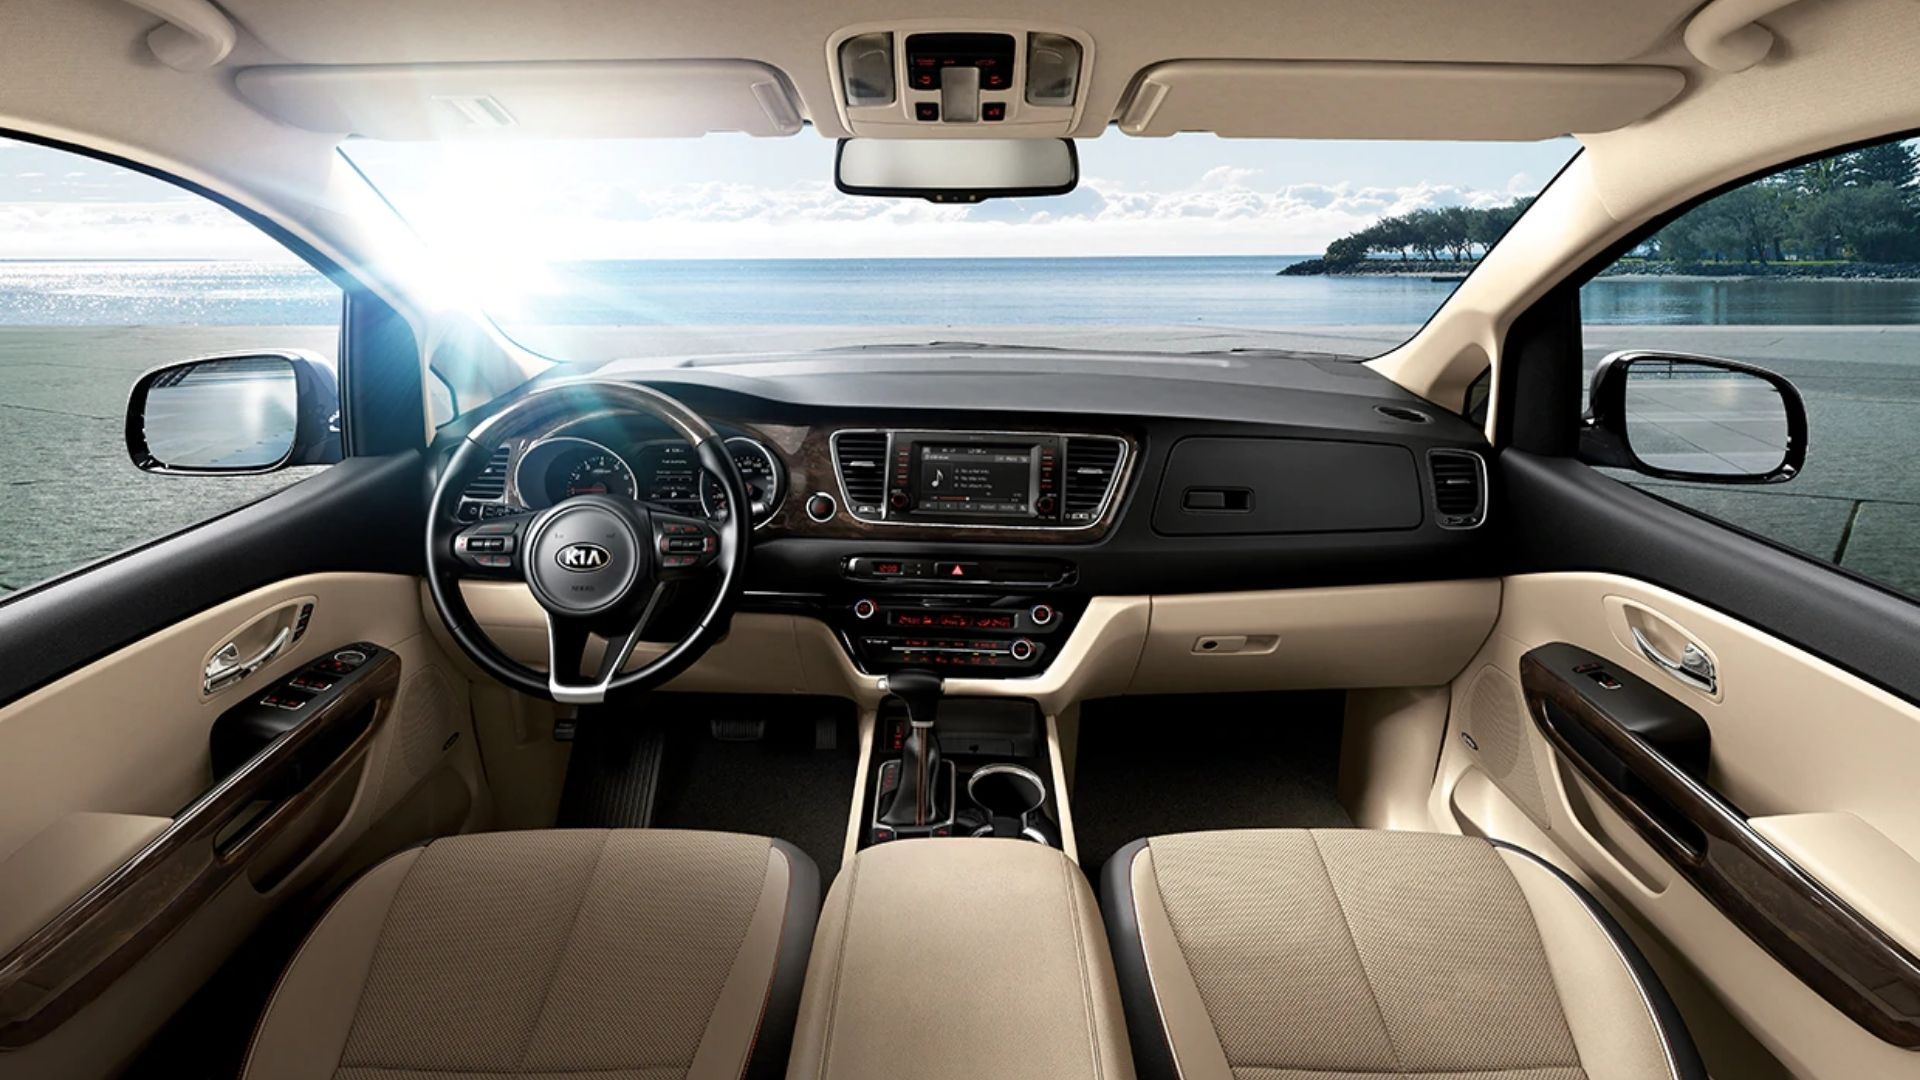 Kia Carnival Features